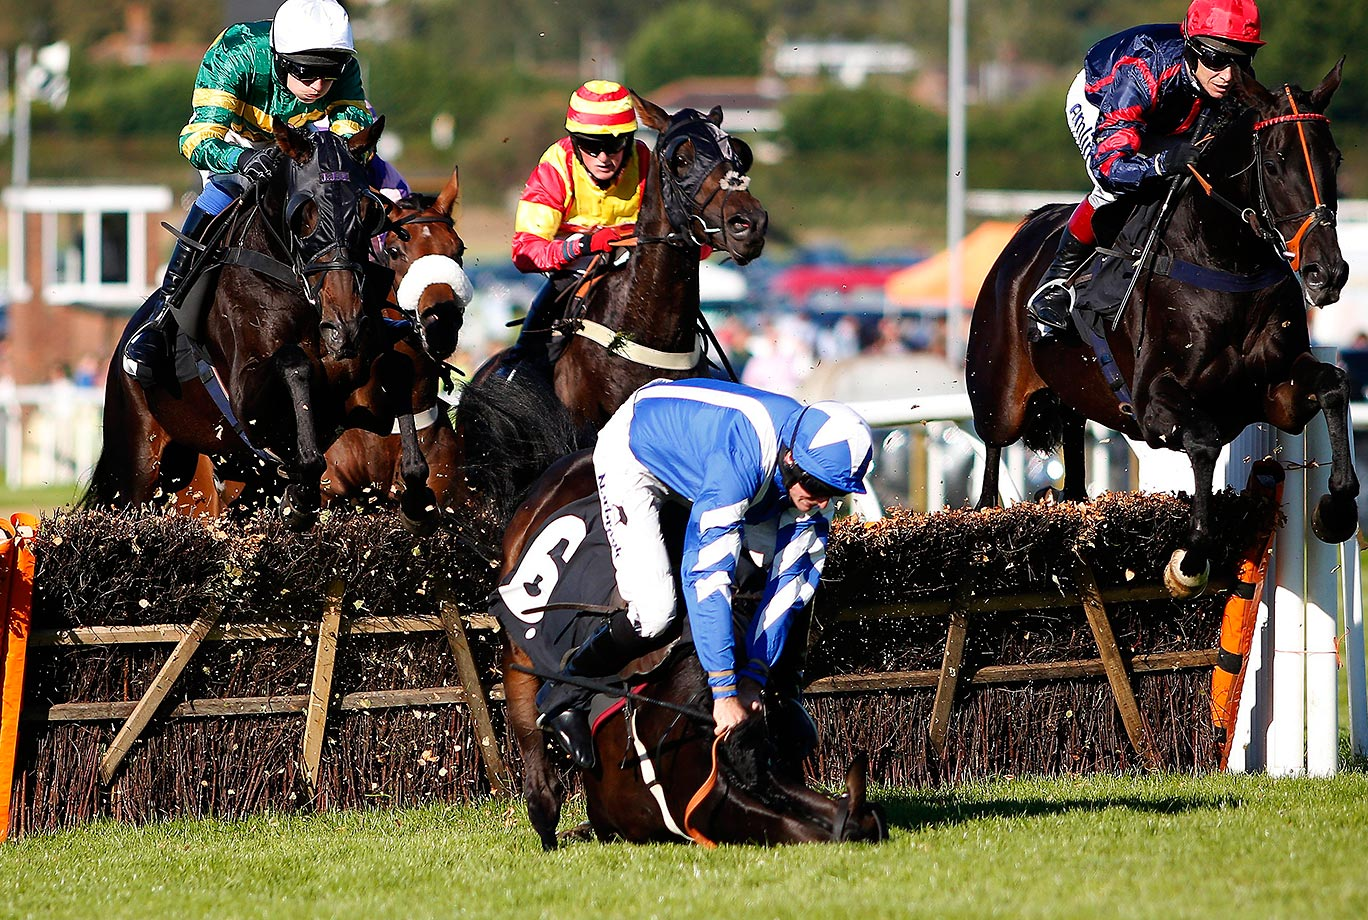 Marc Goldstein falls off Cannon Fodder in The midsussexflooring.co.uk Handicap Hurdle Race in Plumpton, England.